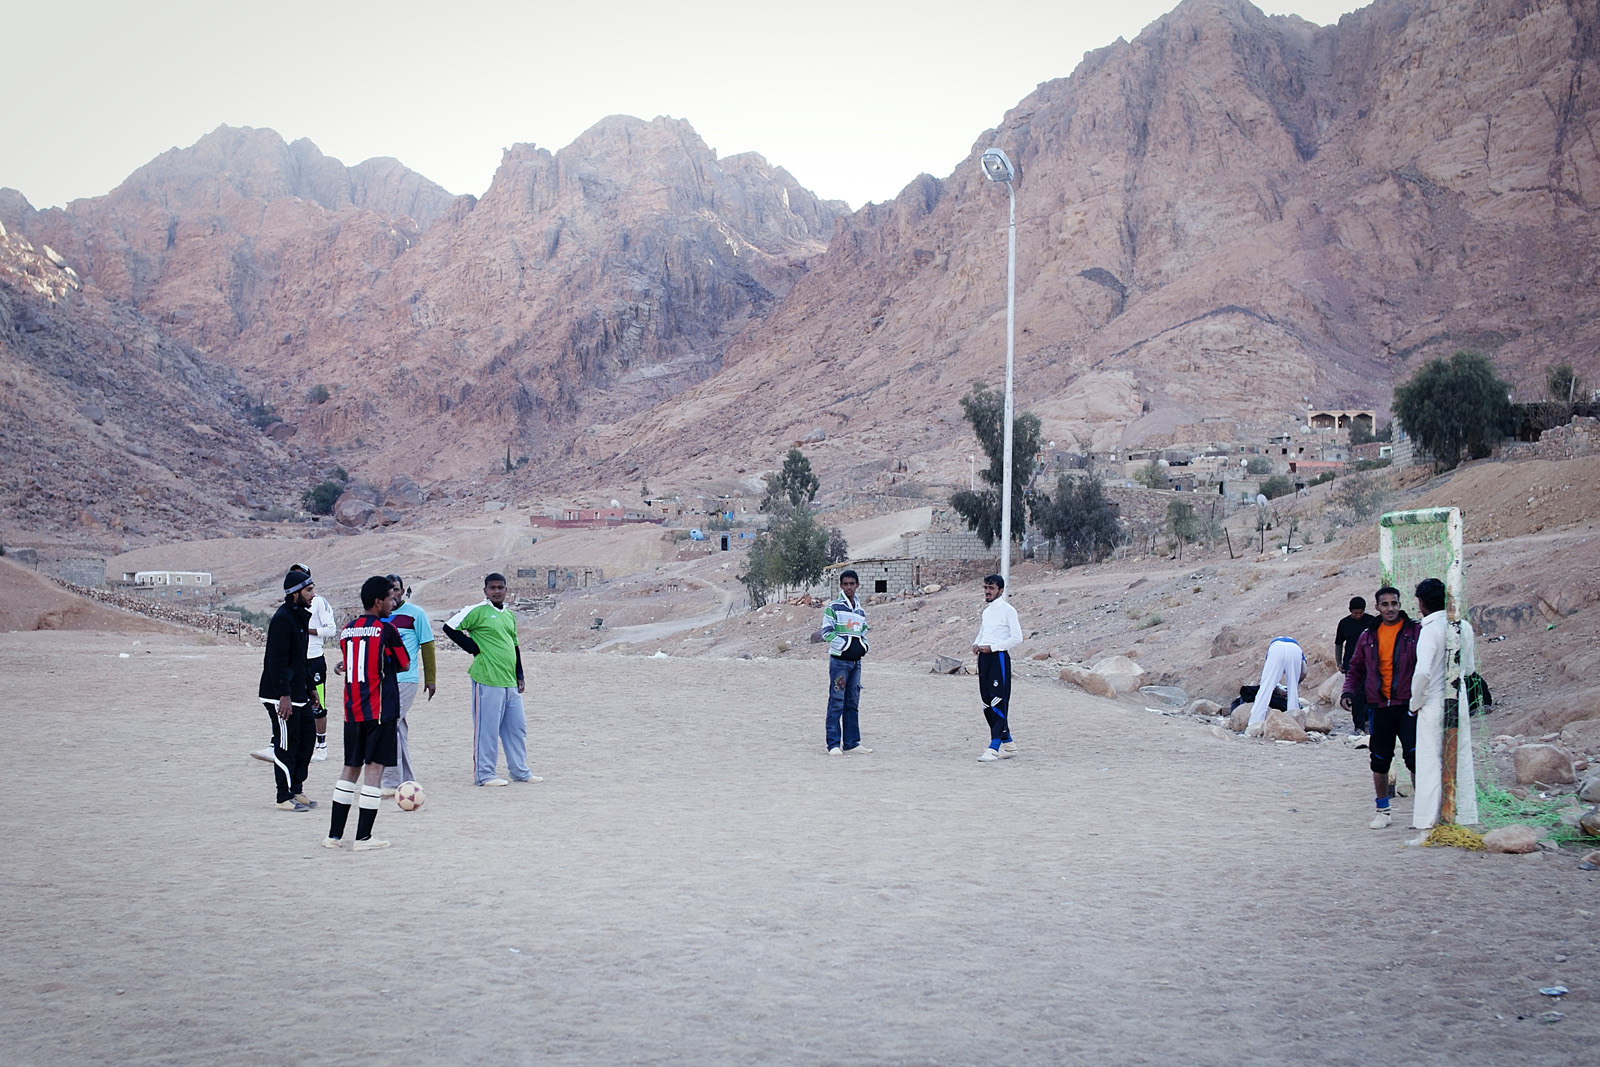 Local Bedouins play soccer at St Katherine, the village at the base of Mt Sinai, Egypt.